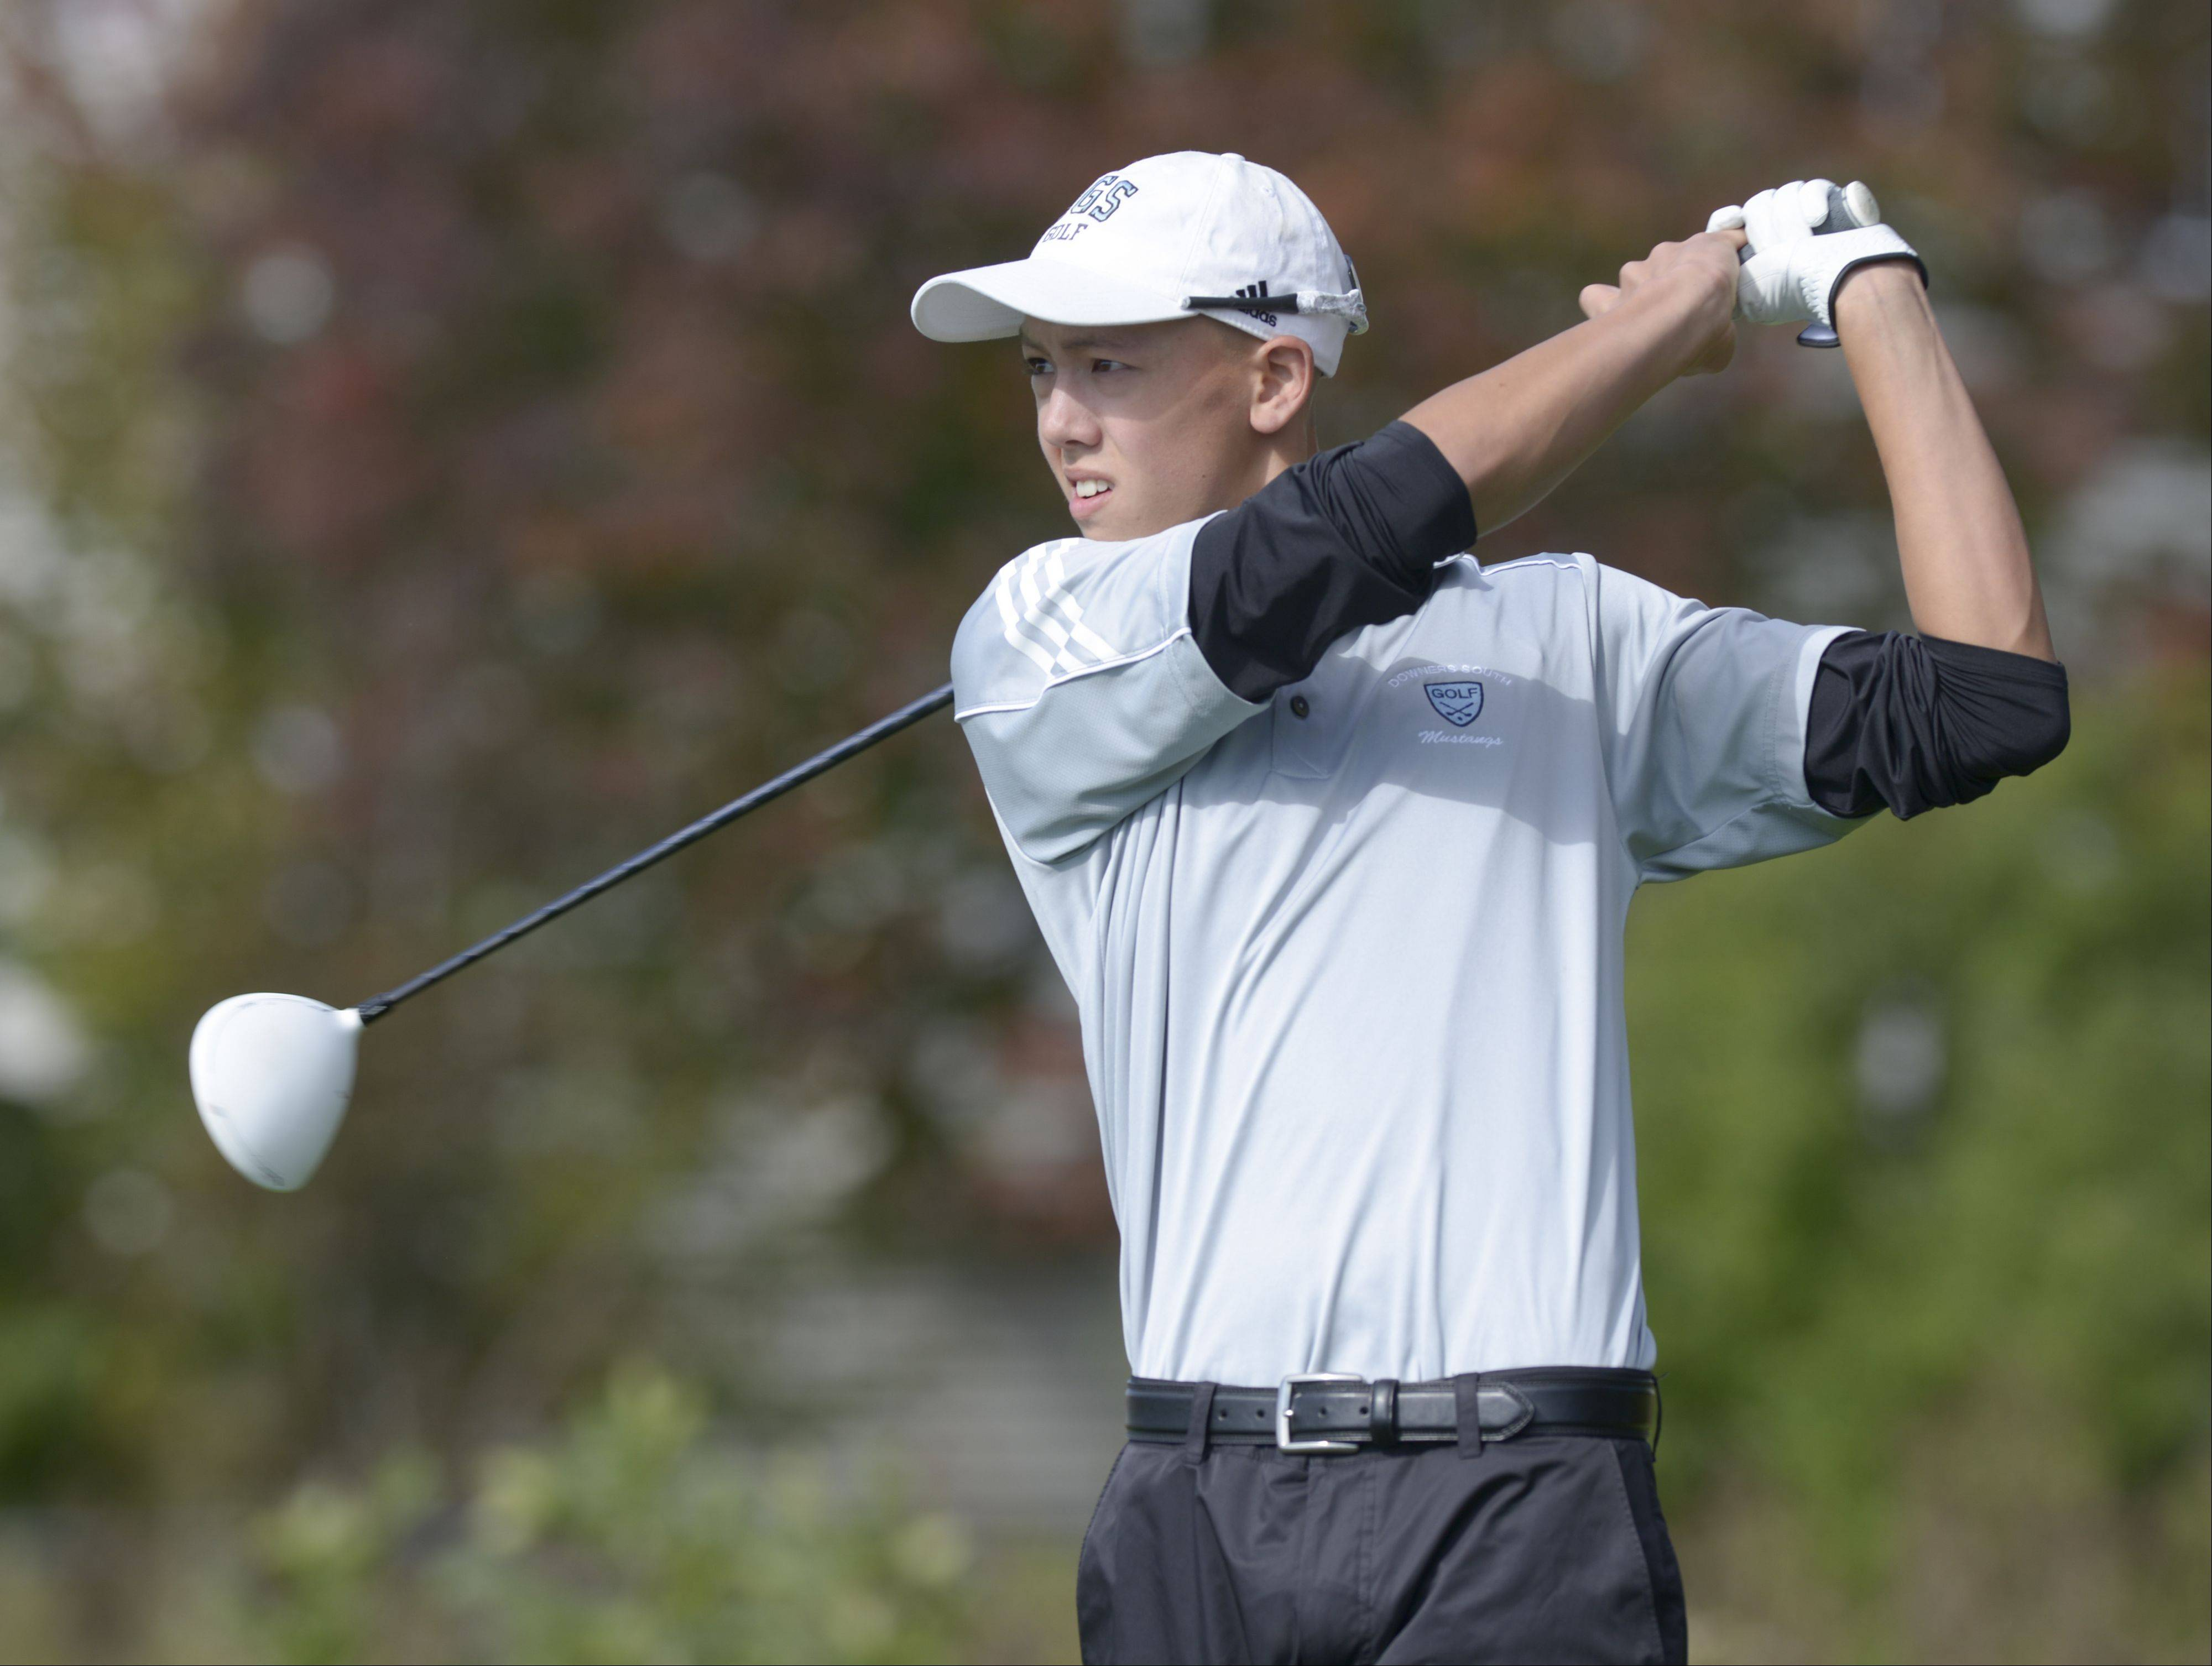 Mark Black/mblack@dailyherald.comTrent Caraher of Downers Grove South tees off during the Class 3A Naperville Central sectional boys golf tournament, Monday at Springbrook Golf Course in Naperville.